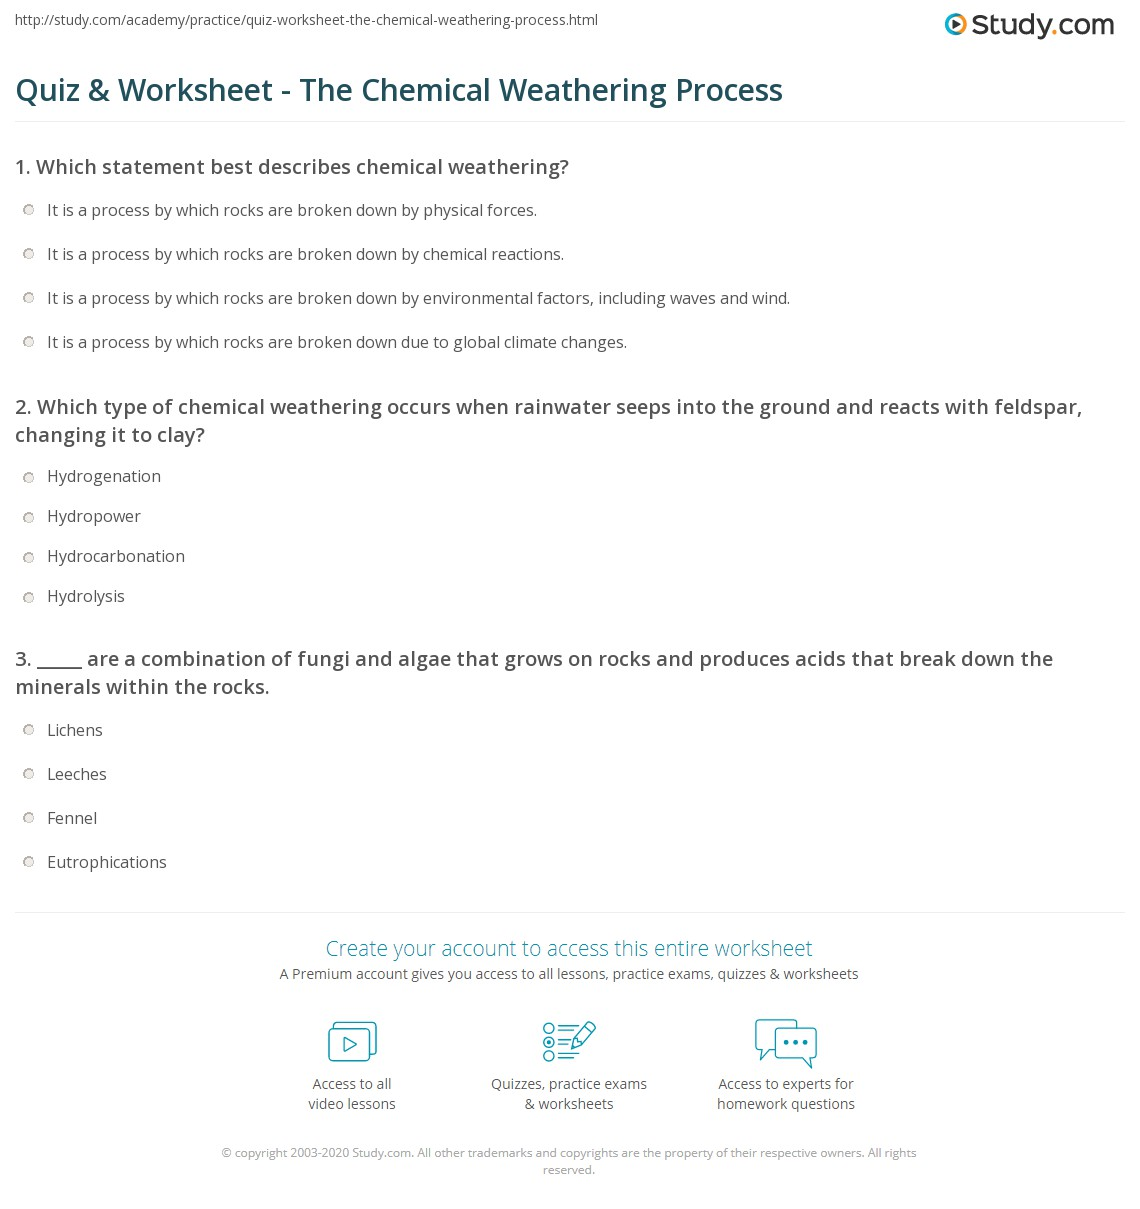 Quiz & Worksheet The Chemical Weathering Process